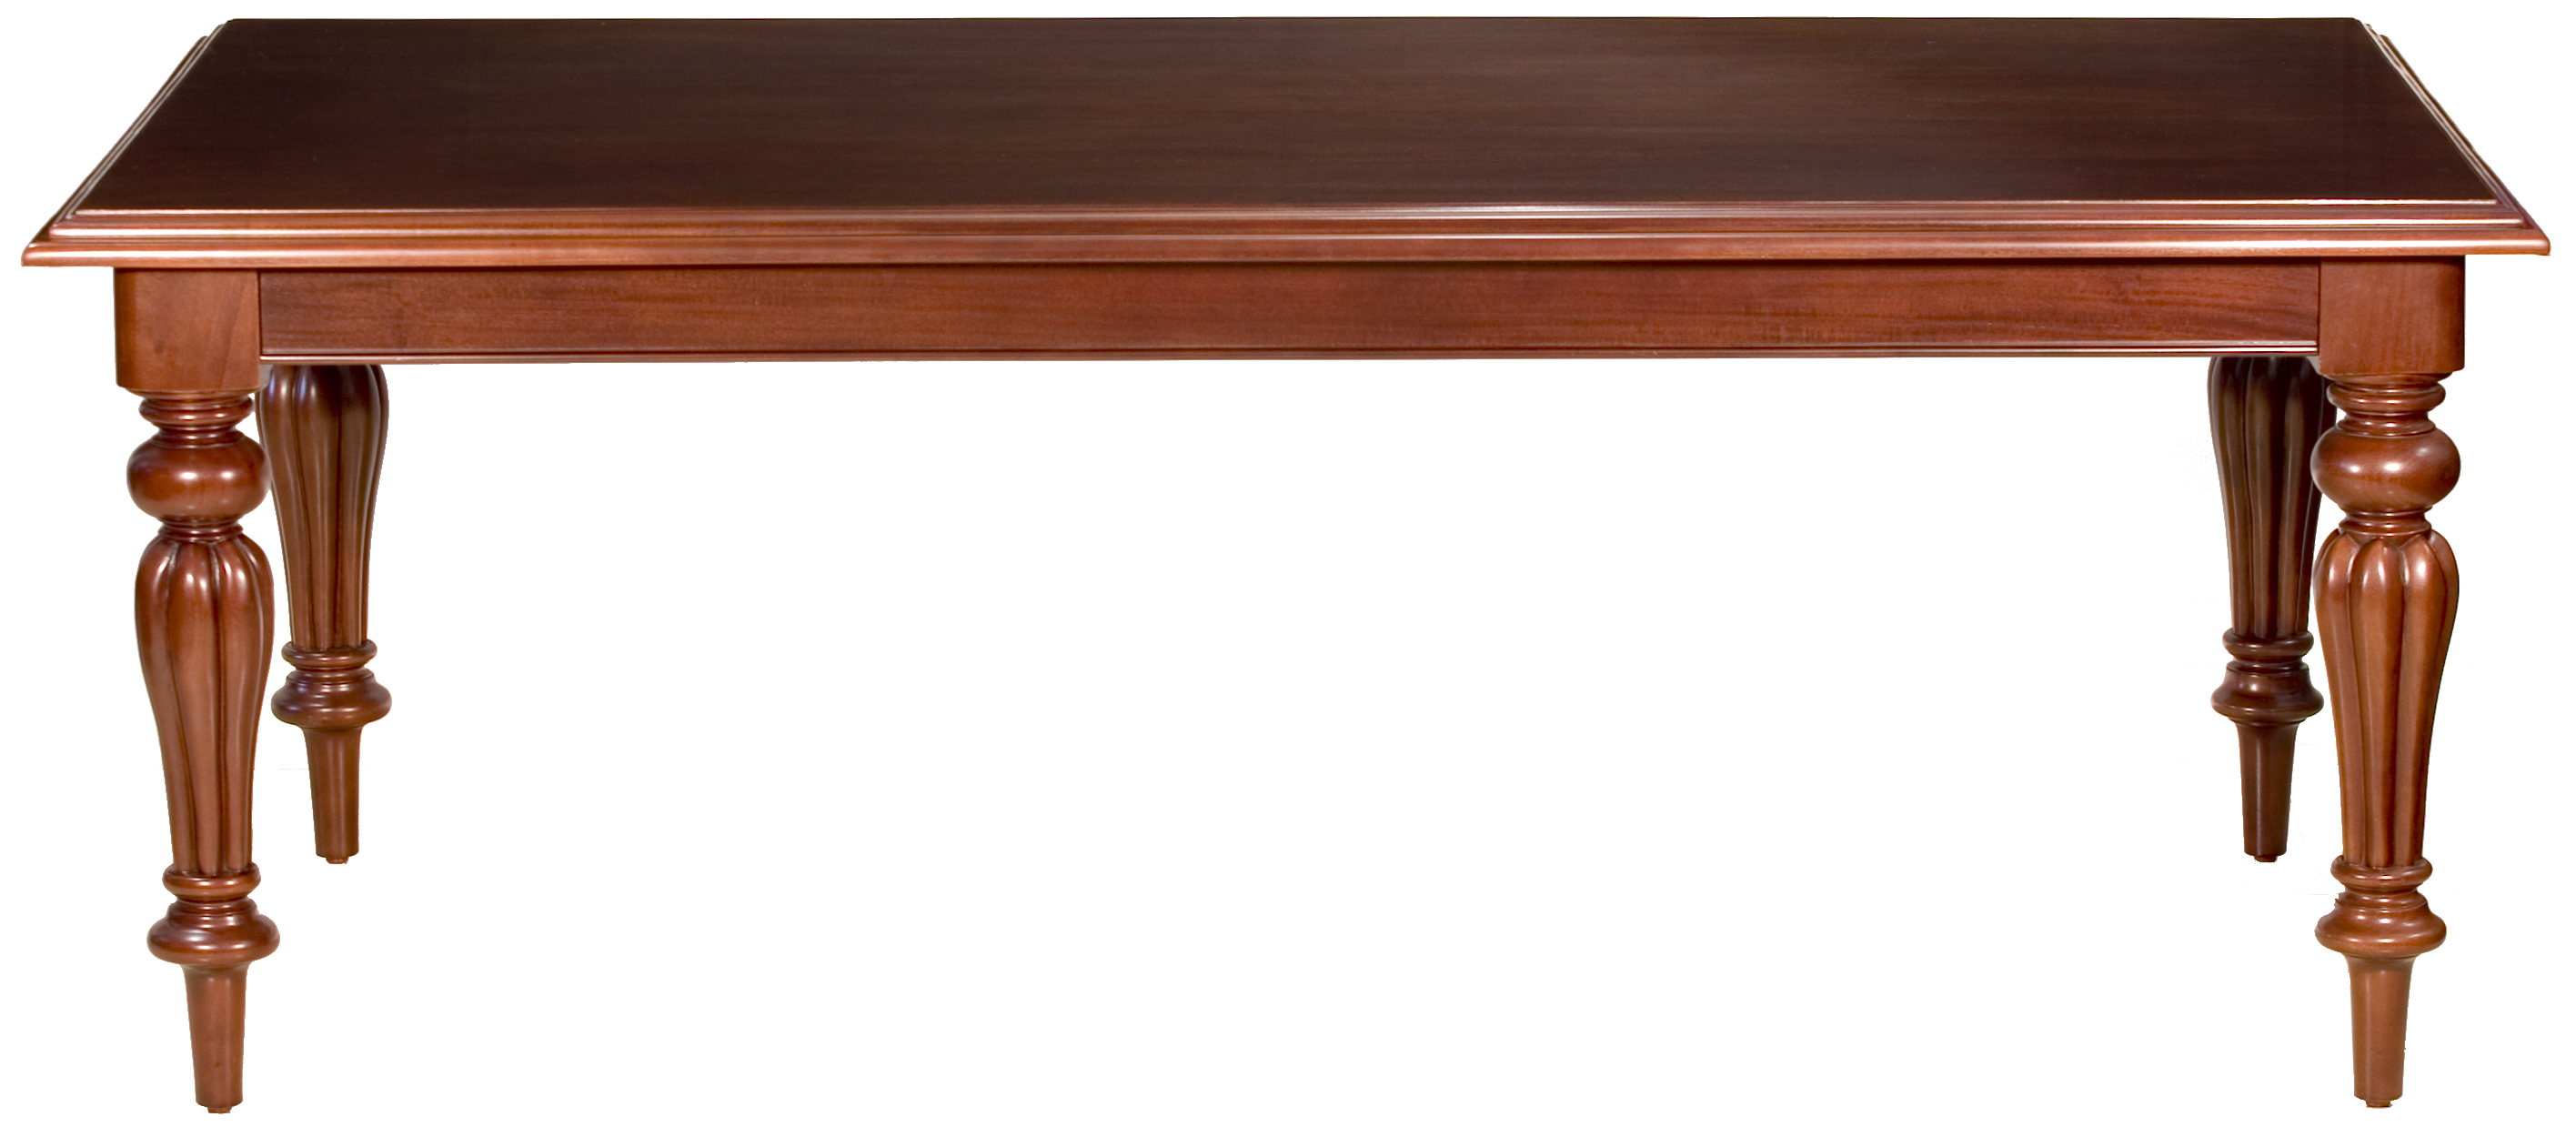 Topolansky victorian dining table 280x120 for Table design history